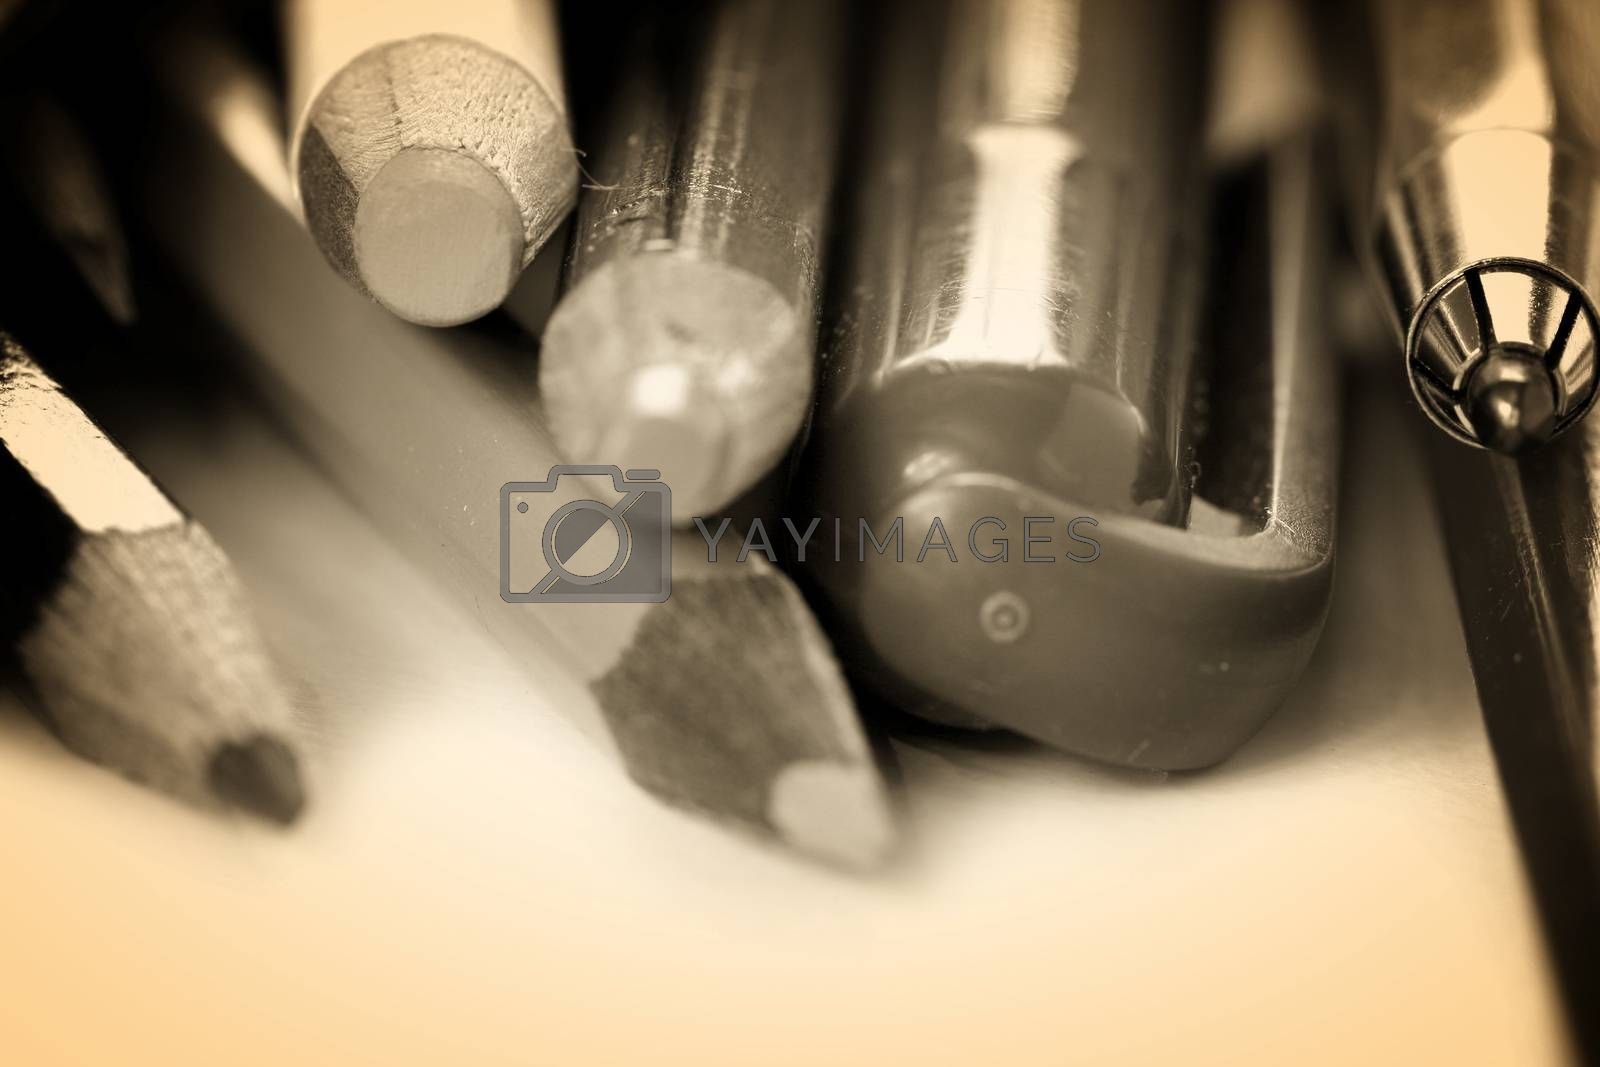 Royalty free image of Close-up pencil. by arosoft